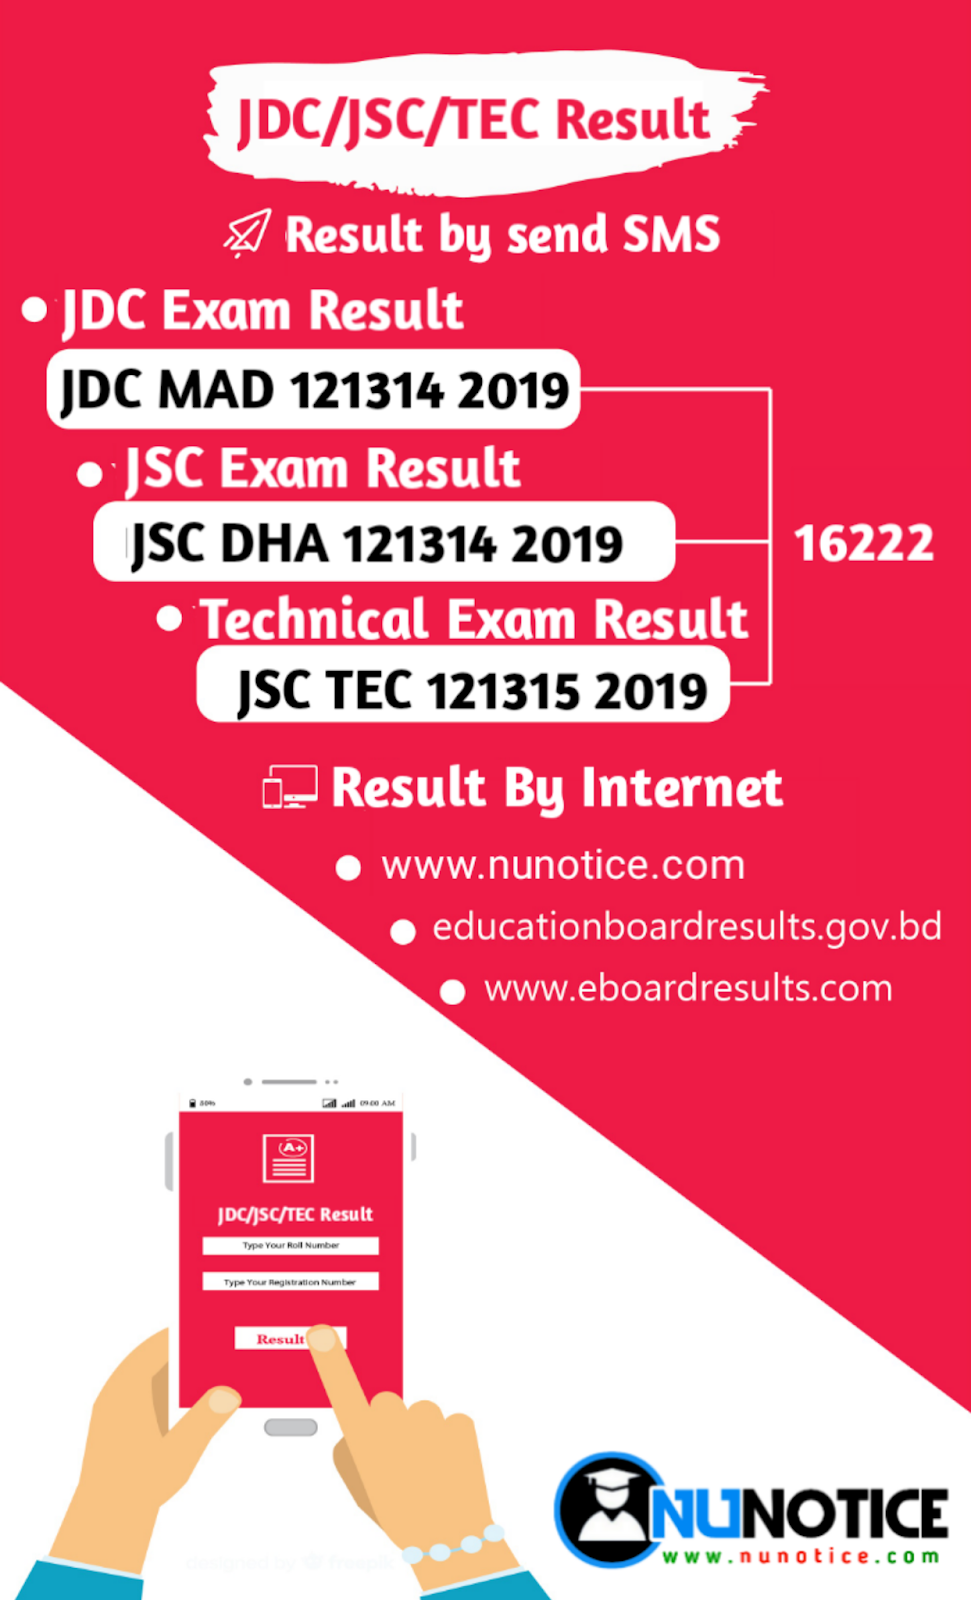 JDC Result Send SMS process